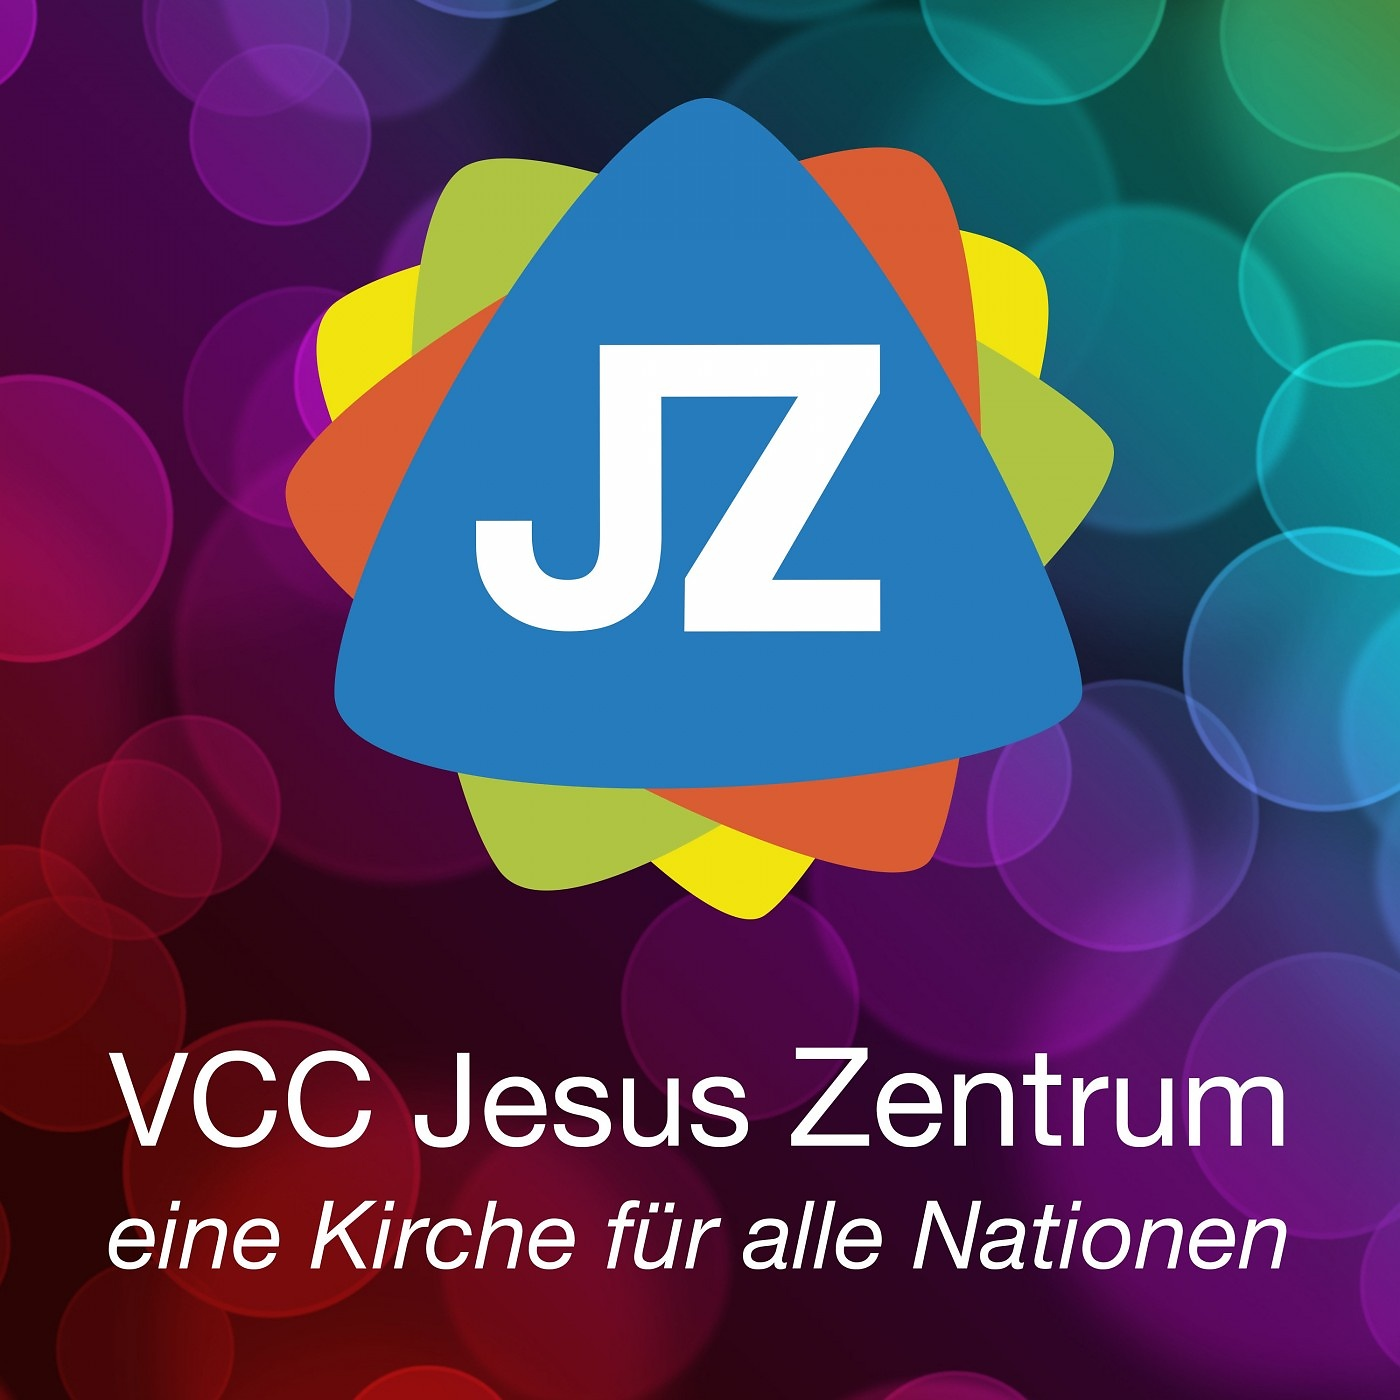 VCC JesusZentrum Video Podcast Channel